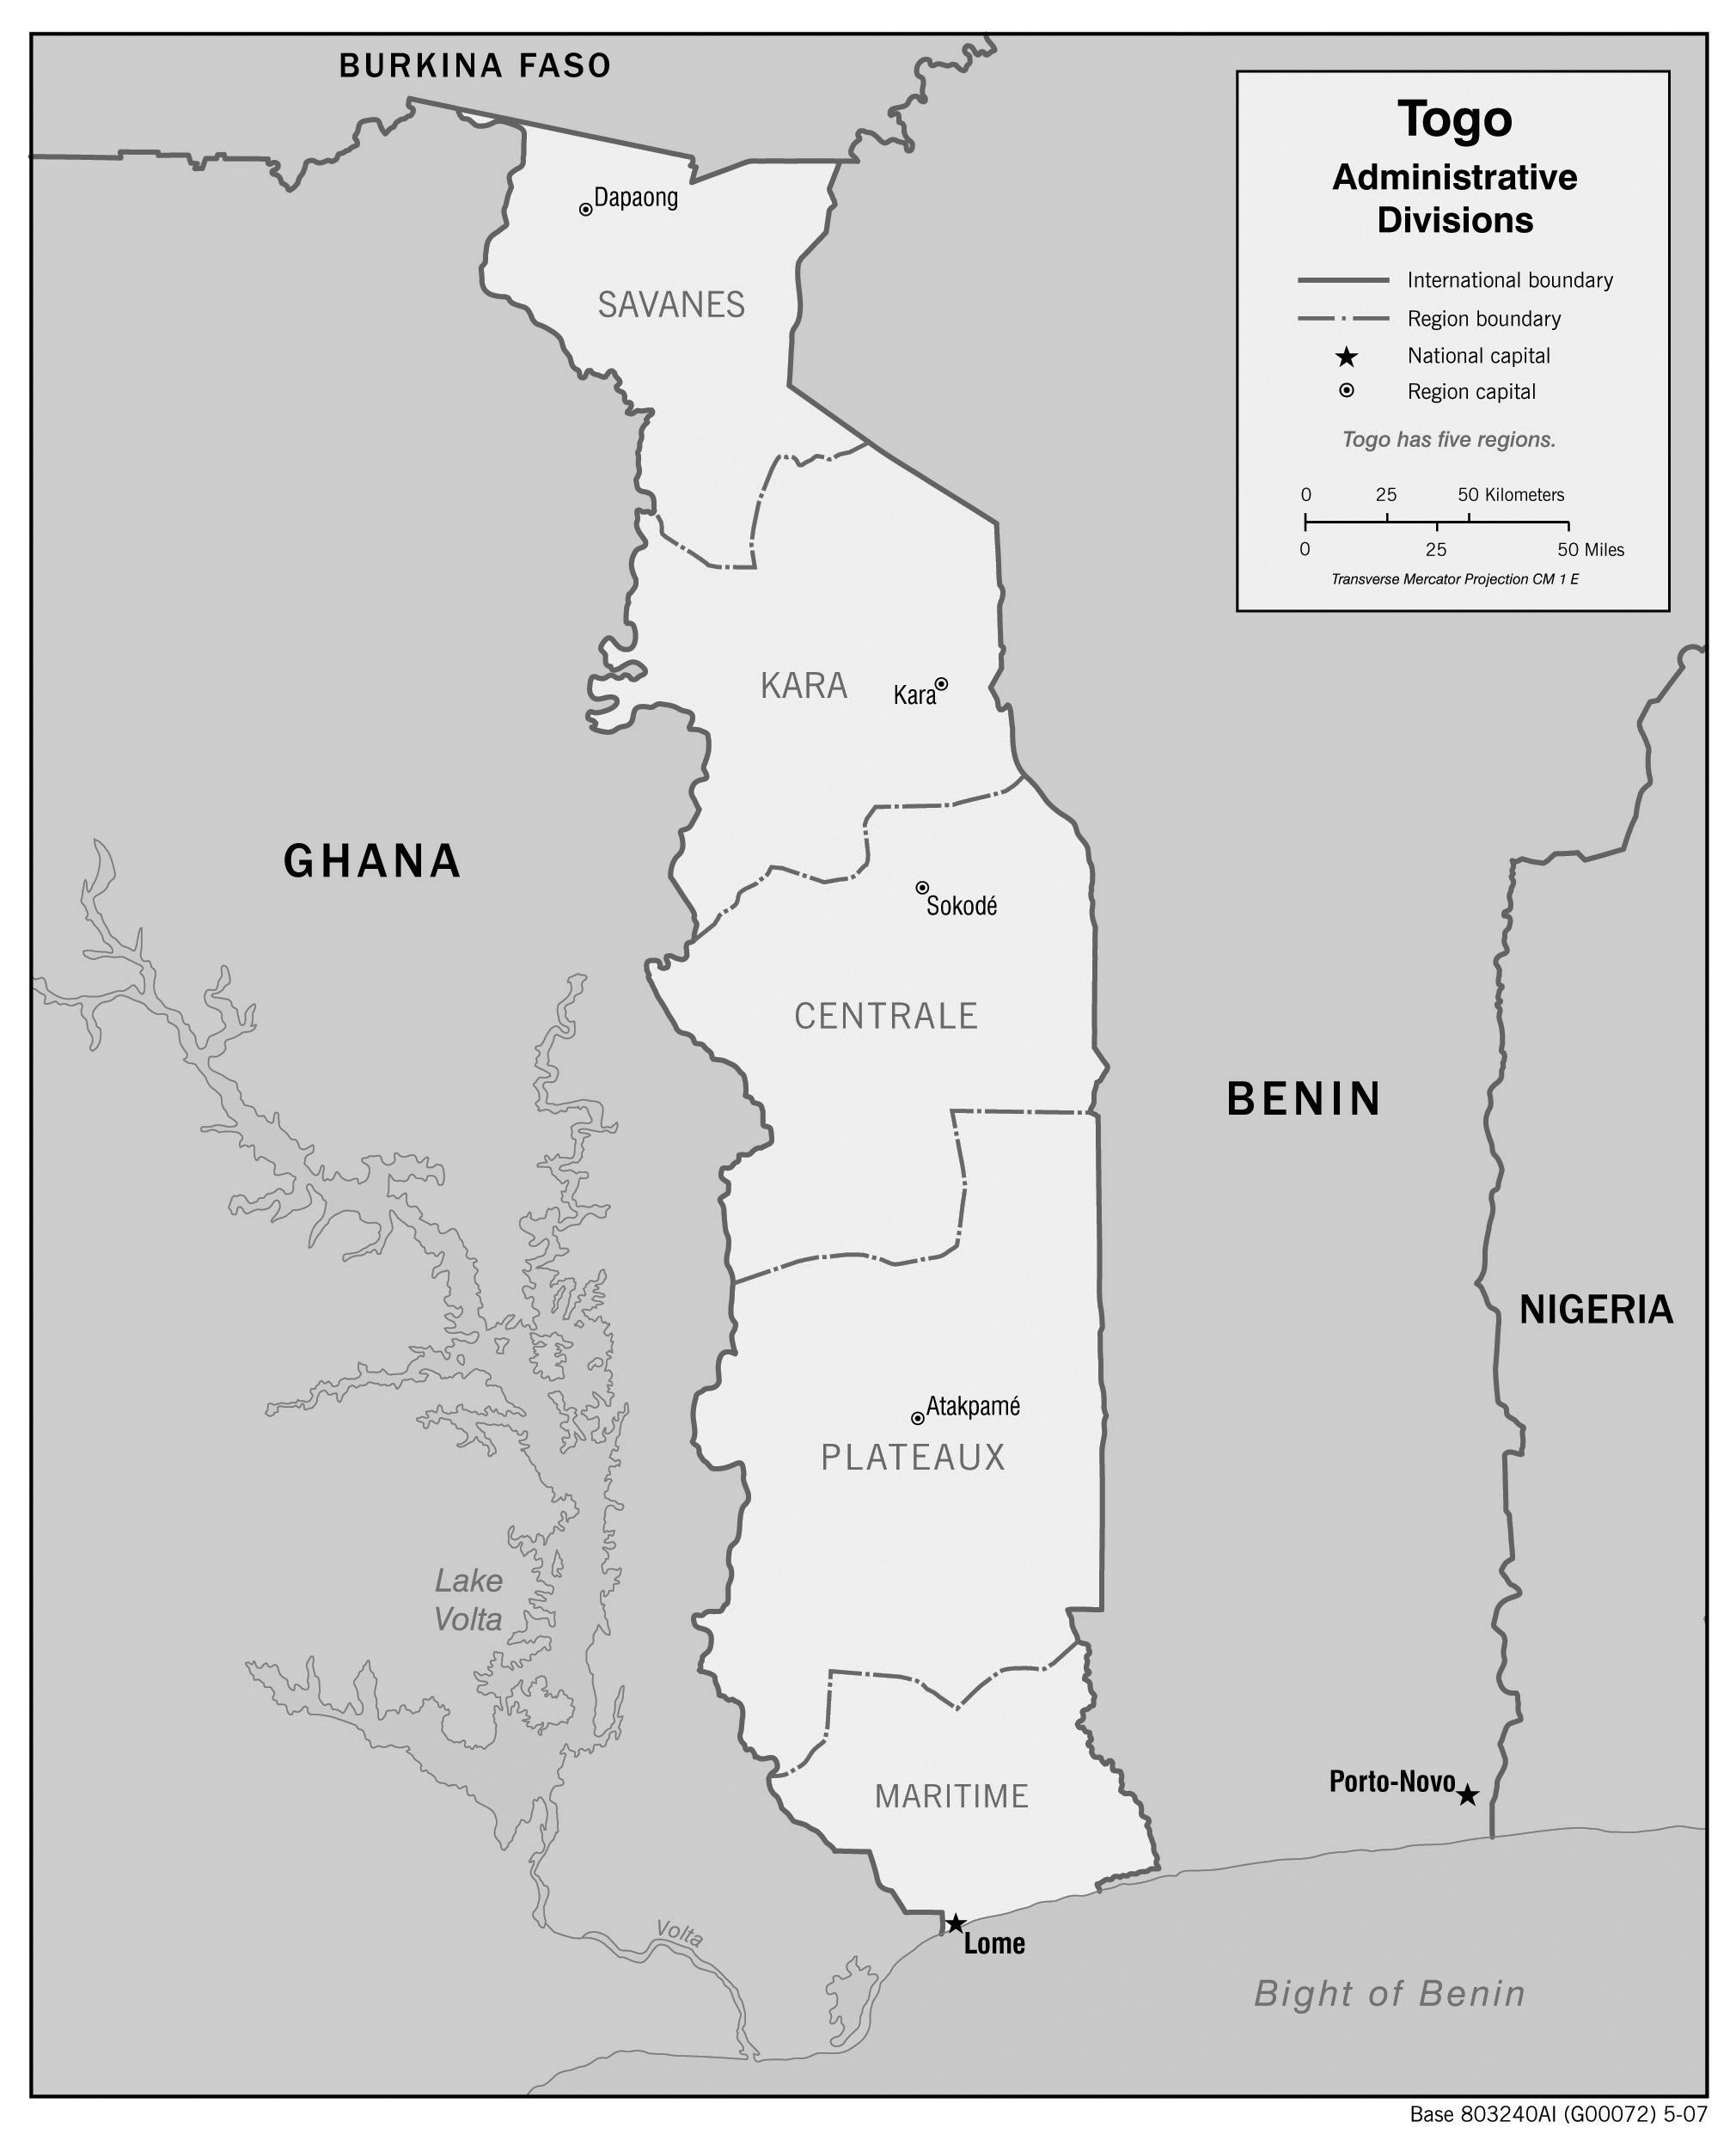 Togo administrative map with regions capitals greyscale